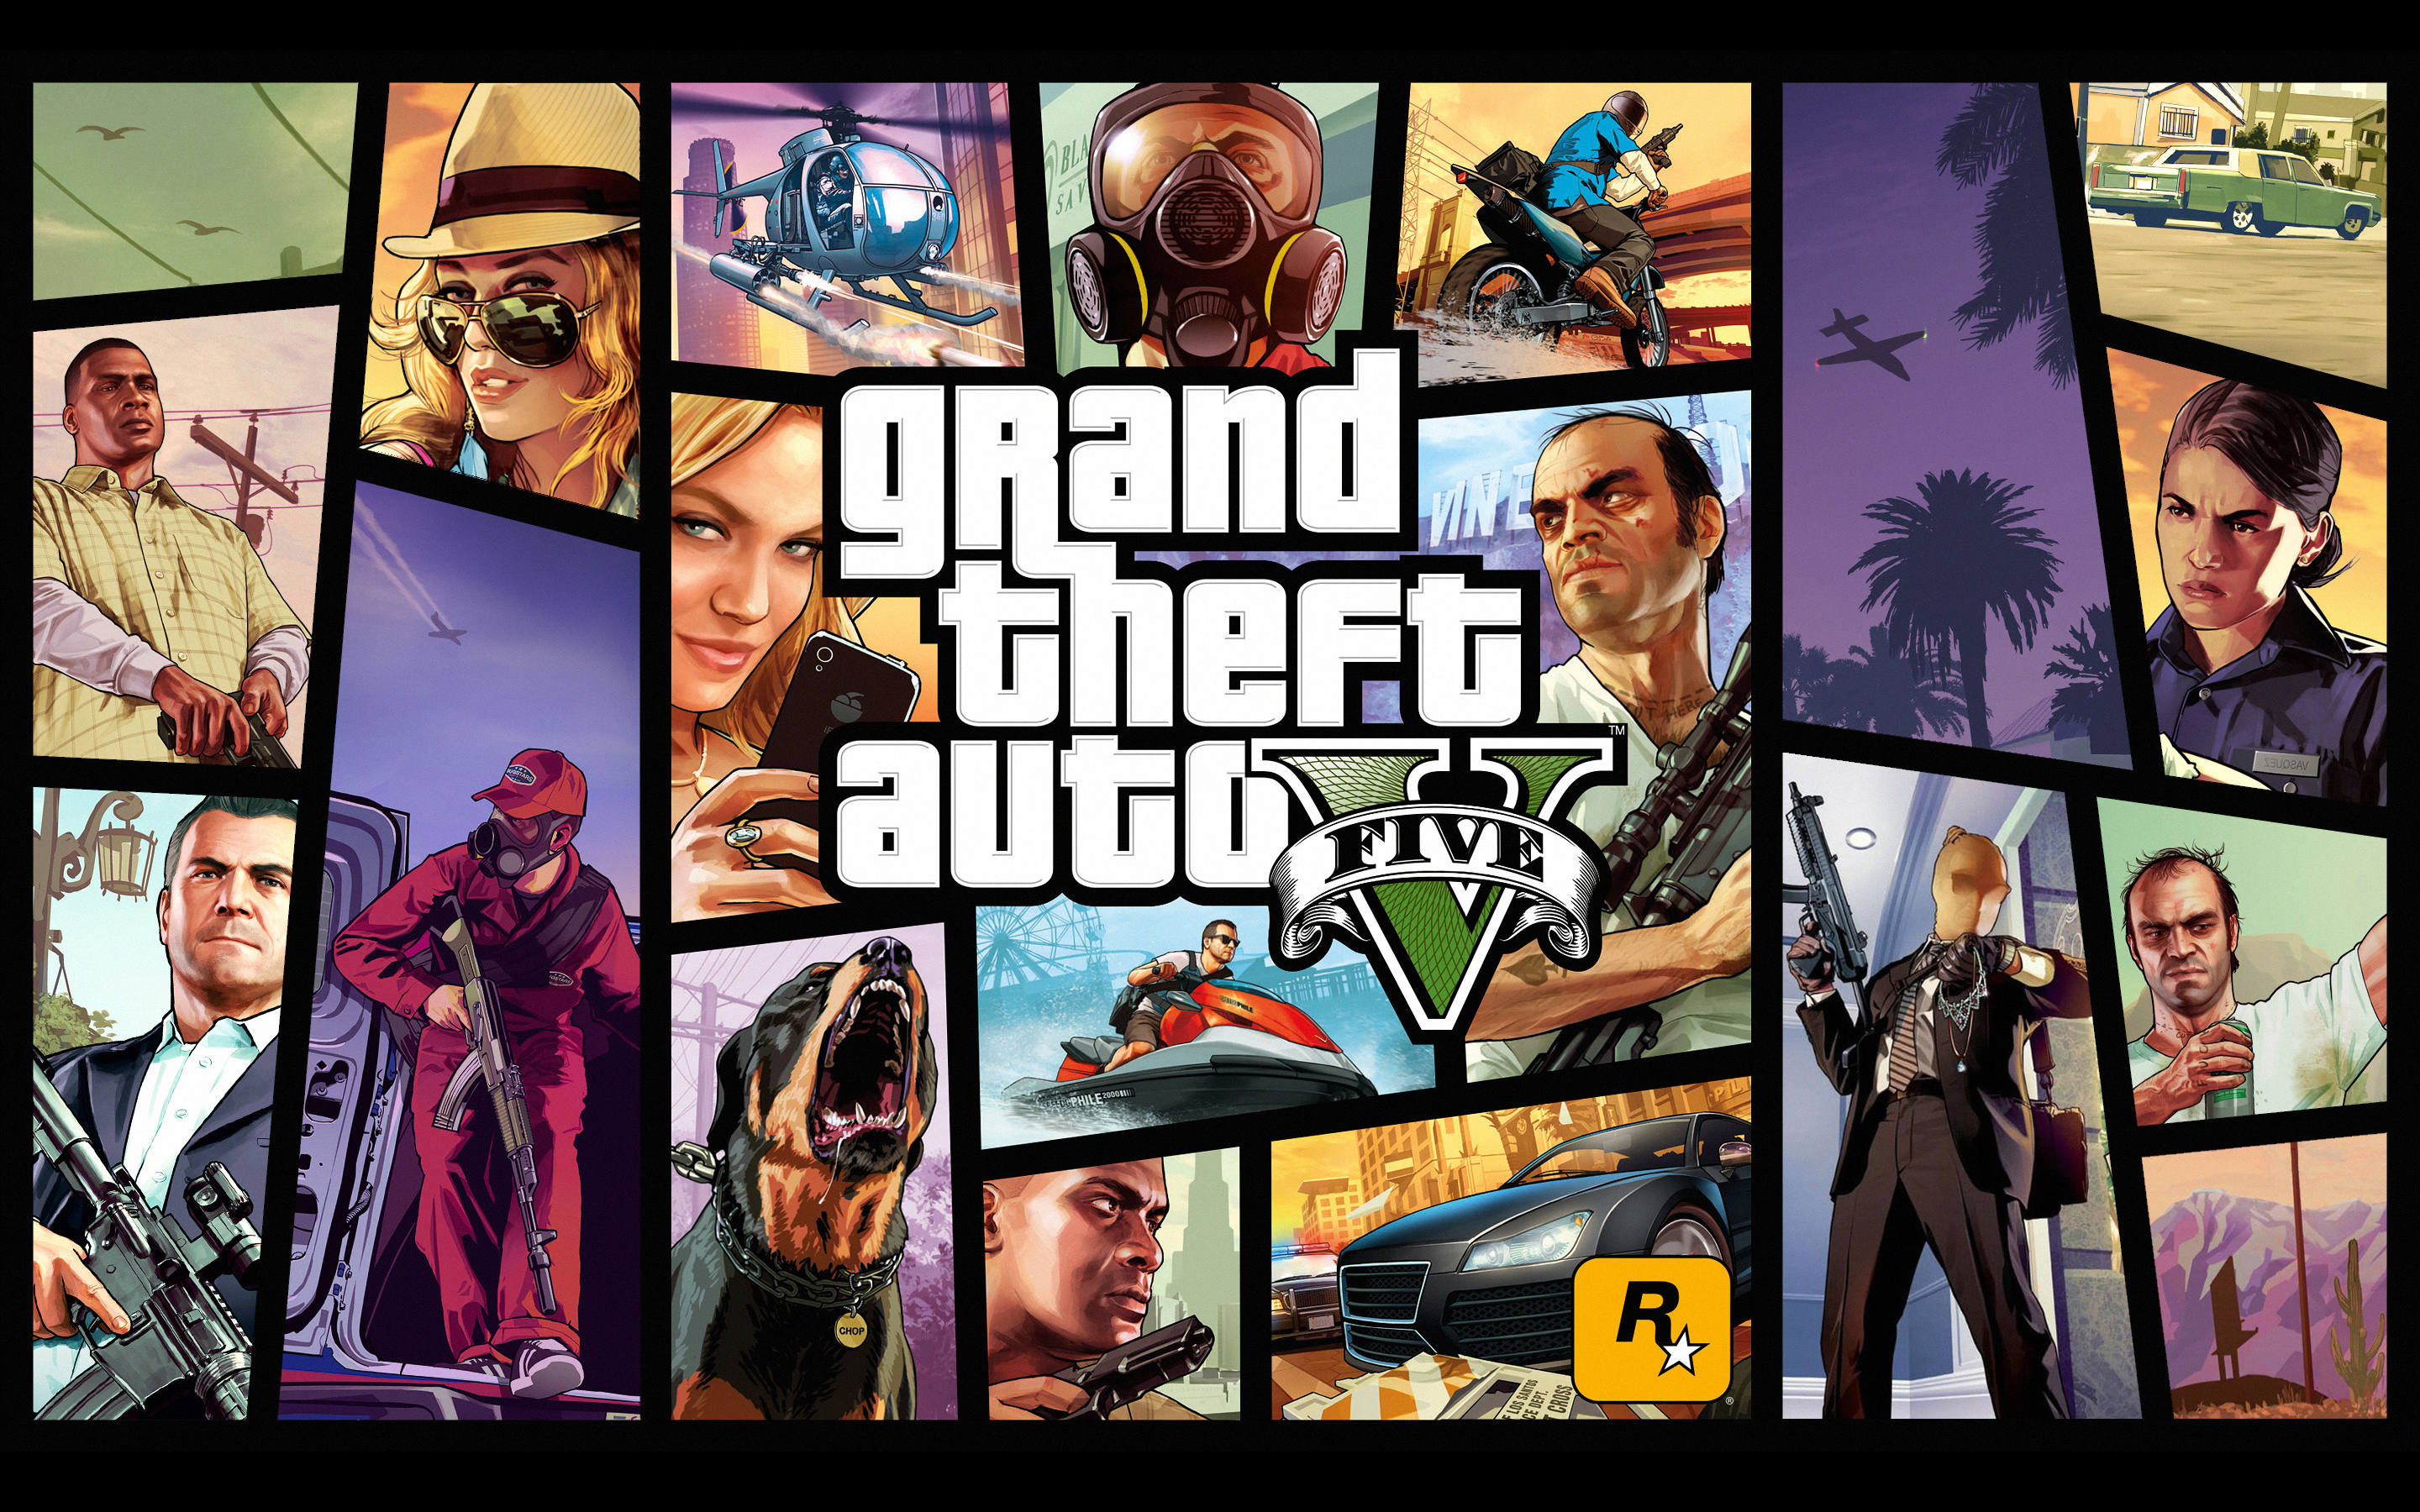 Trucchi GTA 5 PS3-Xbox 360, Ps4, Xbox One e PC - la lista completa